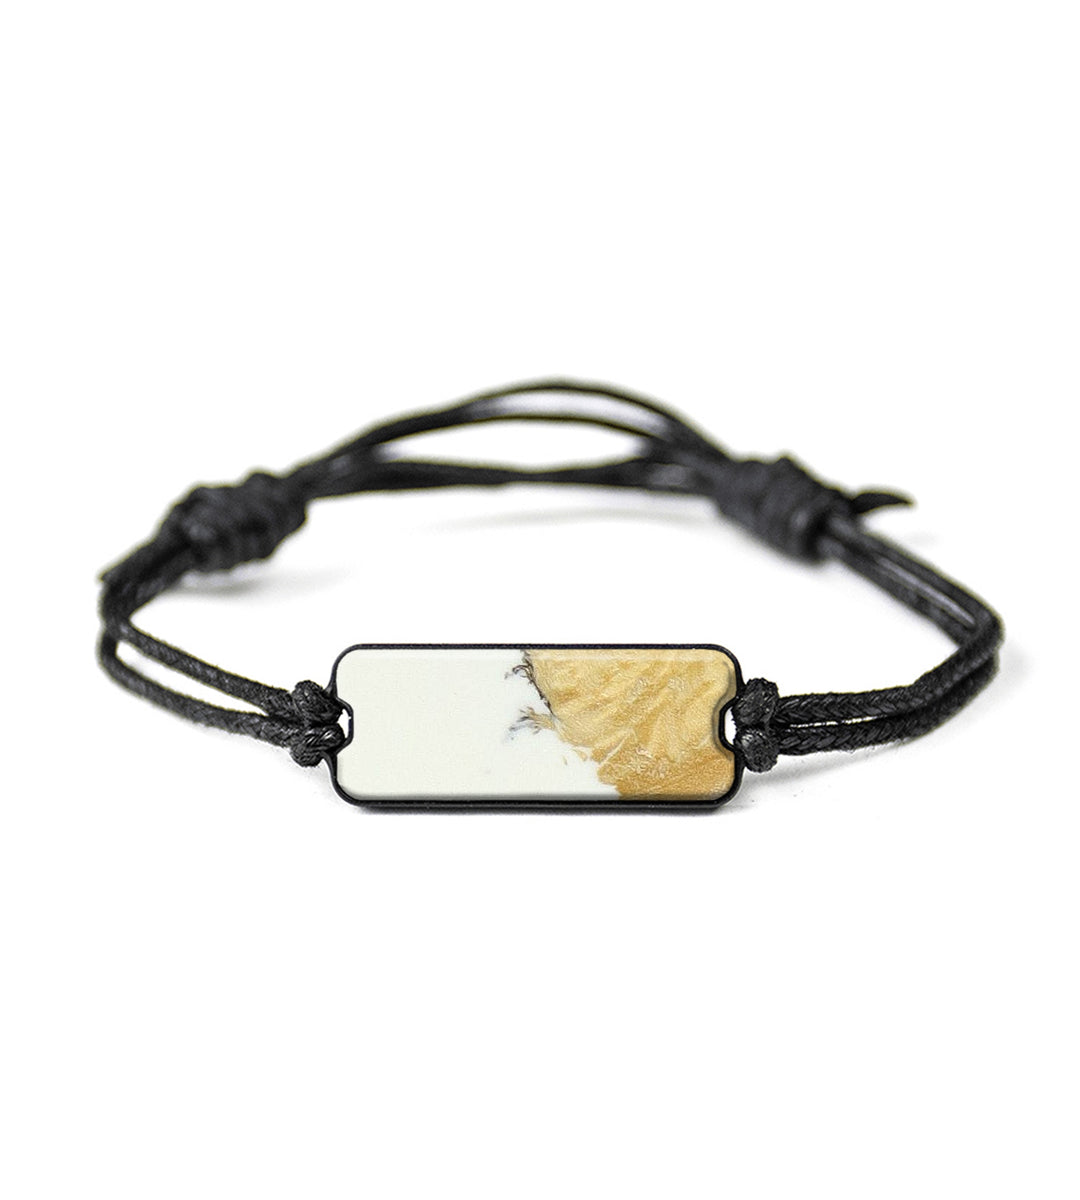 Classic Wood+Resin Bracelet - Berangere (Black & White, 394161)